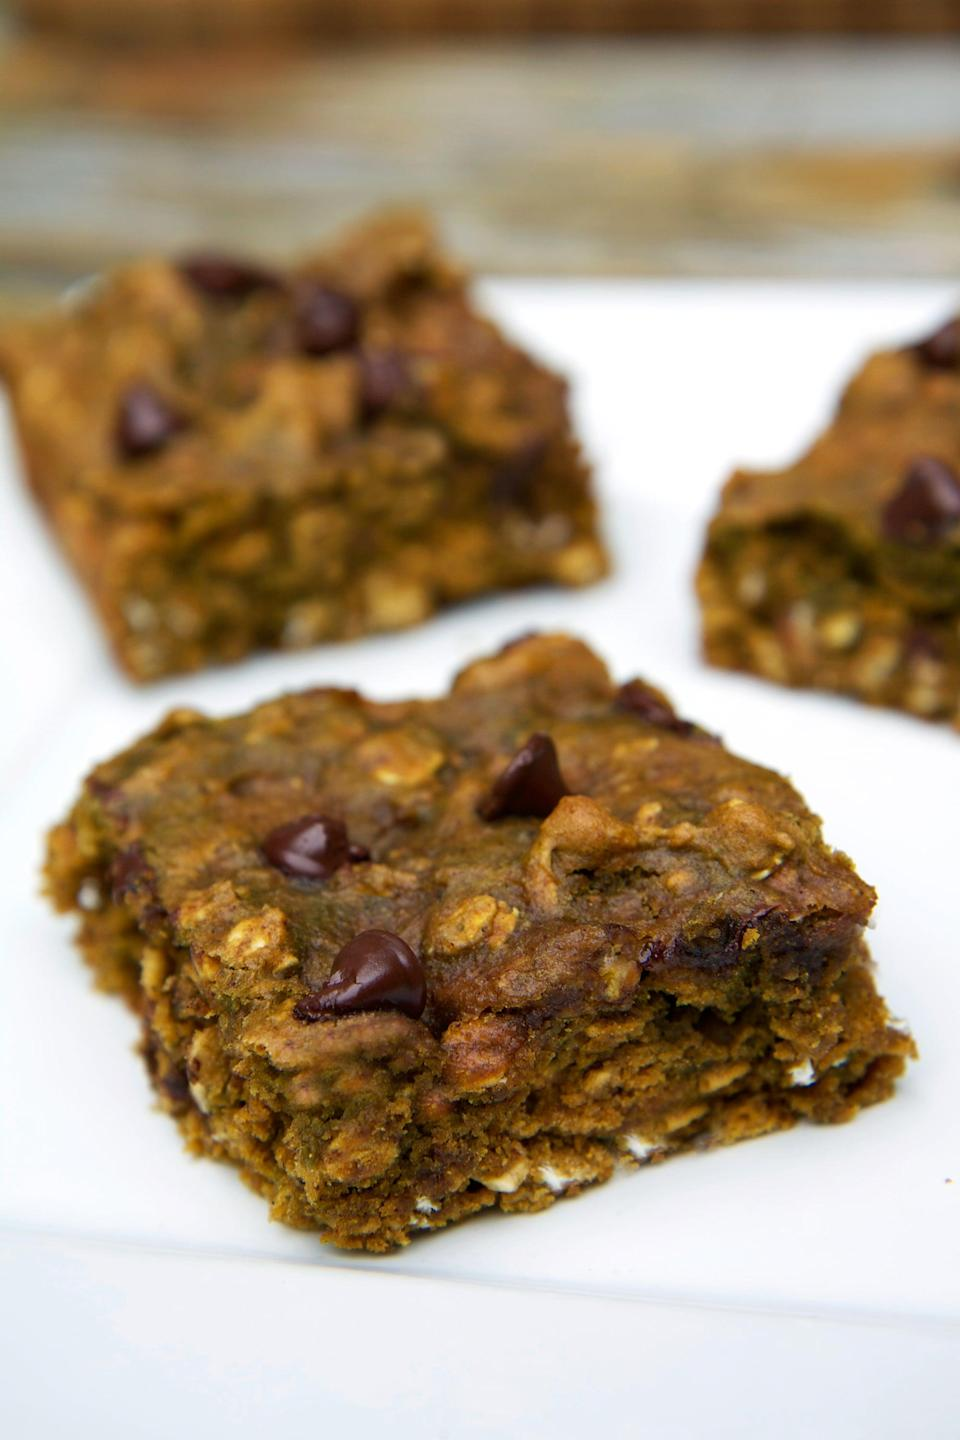 """<p>If you are craving a sweet treat at the end of the night, these protein-packed chocolate chip pumpkin protein bars will satisfy any craving.</p> <p><b>Get the recipe</b>: <a href=""""https://www.popsugar.com/fitness/Pumpkin-Protein-Bar-Recipe-35747097"""" class=""""link rapid-noclick-resp"""" rel=""""nofollow noopener"""" target=""""_blank"""" data-ylk=""""slk:chocolate chip pumpkin protein bars"""">chocolate chip pumpkin protein bars</a></p>"""